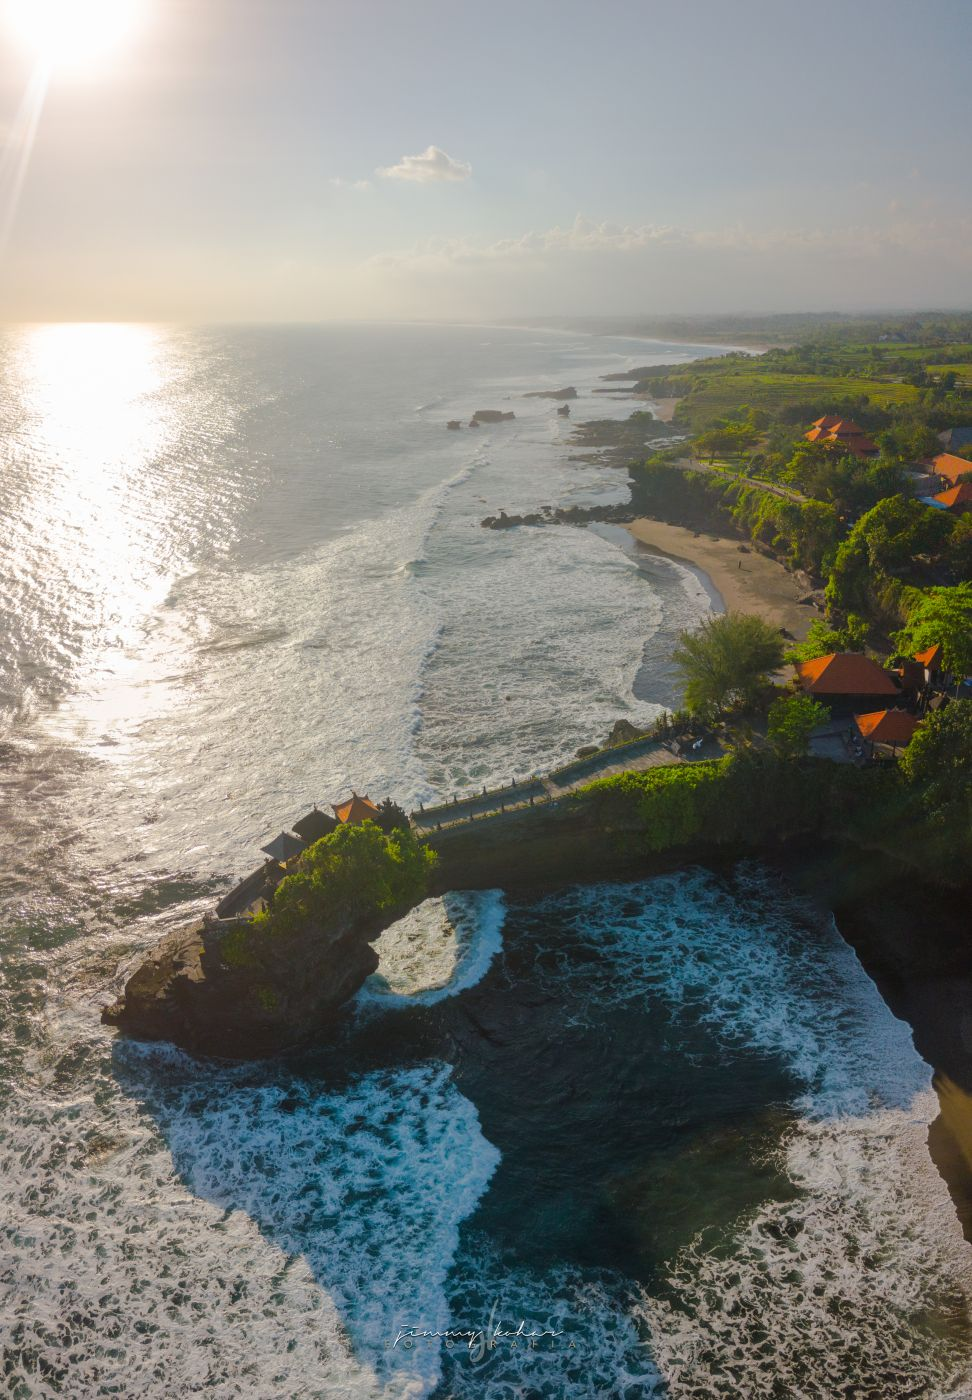 Pura Batu Bolong from Above, Indonesia